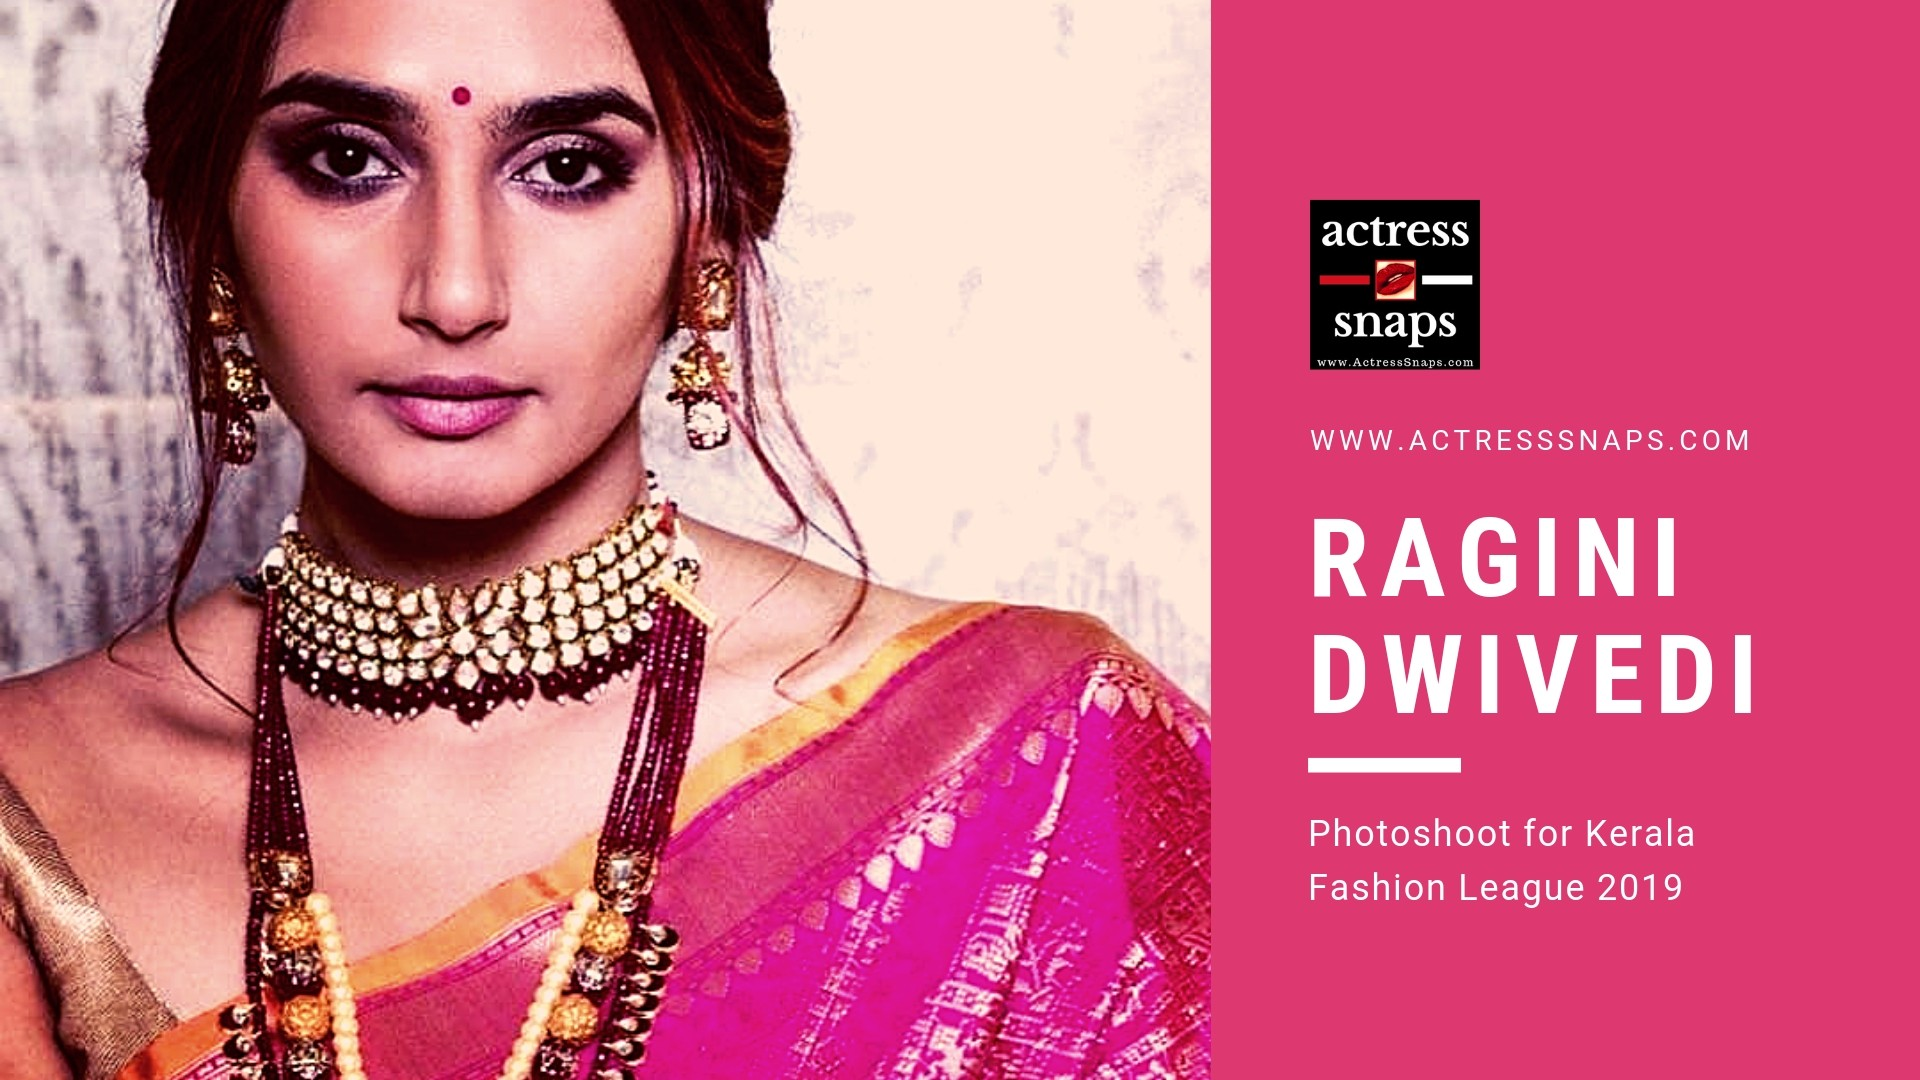 Ragini Dwivedi - Kerala Fashion League 2019 - Sexy Actress Pictures | Hot Actress Pictures - ActressSnaps.com